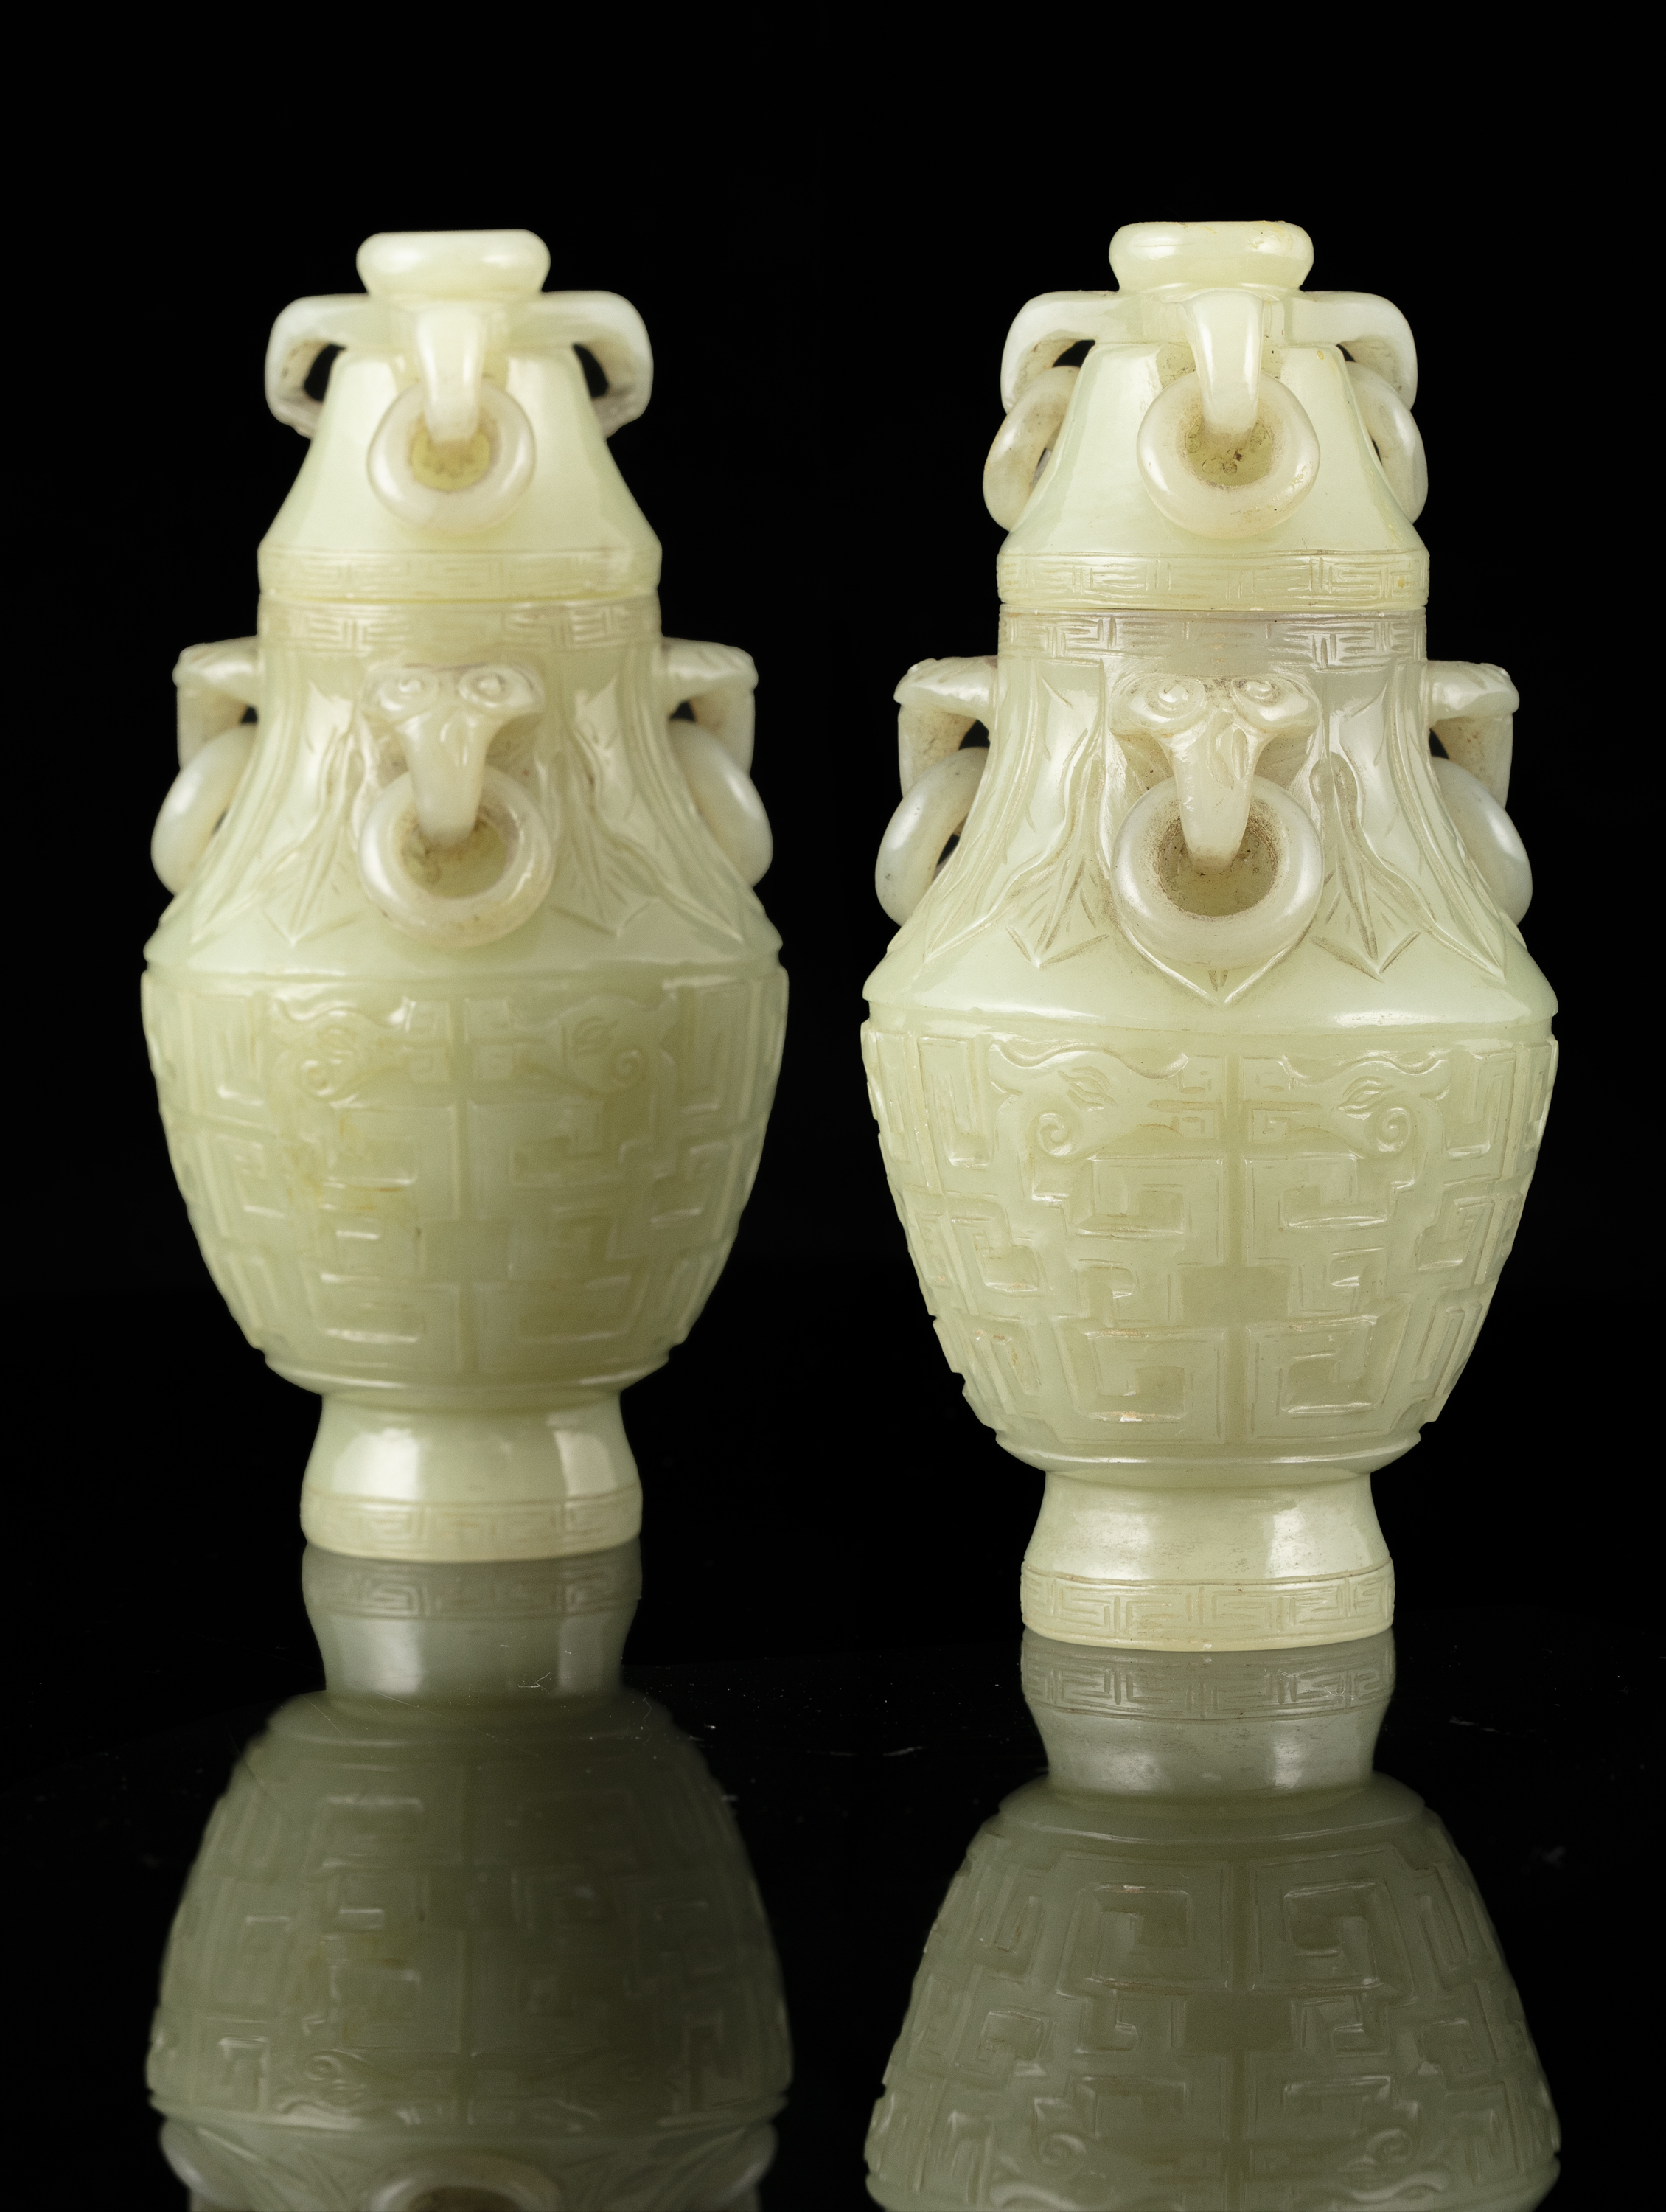 A PAIR OF SMALL JADE LIDDED URNS WITH LOOSE RINGS China, Qing Dynasty, 19th century The body